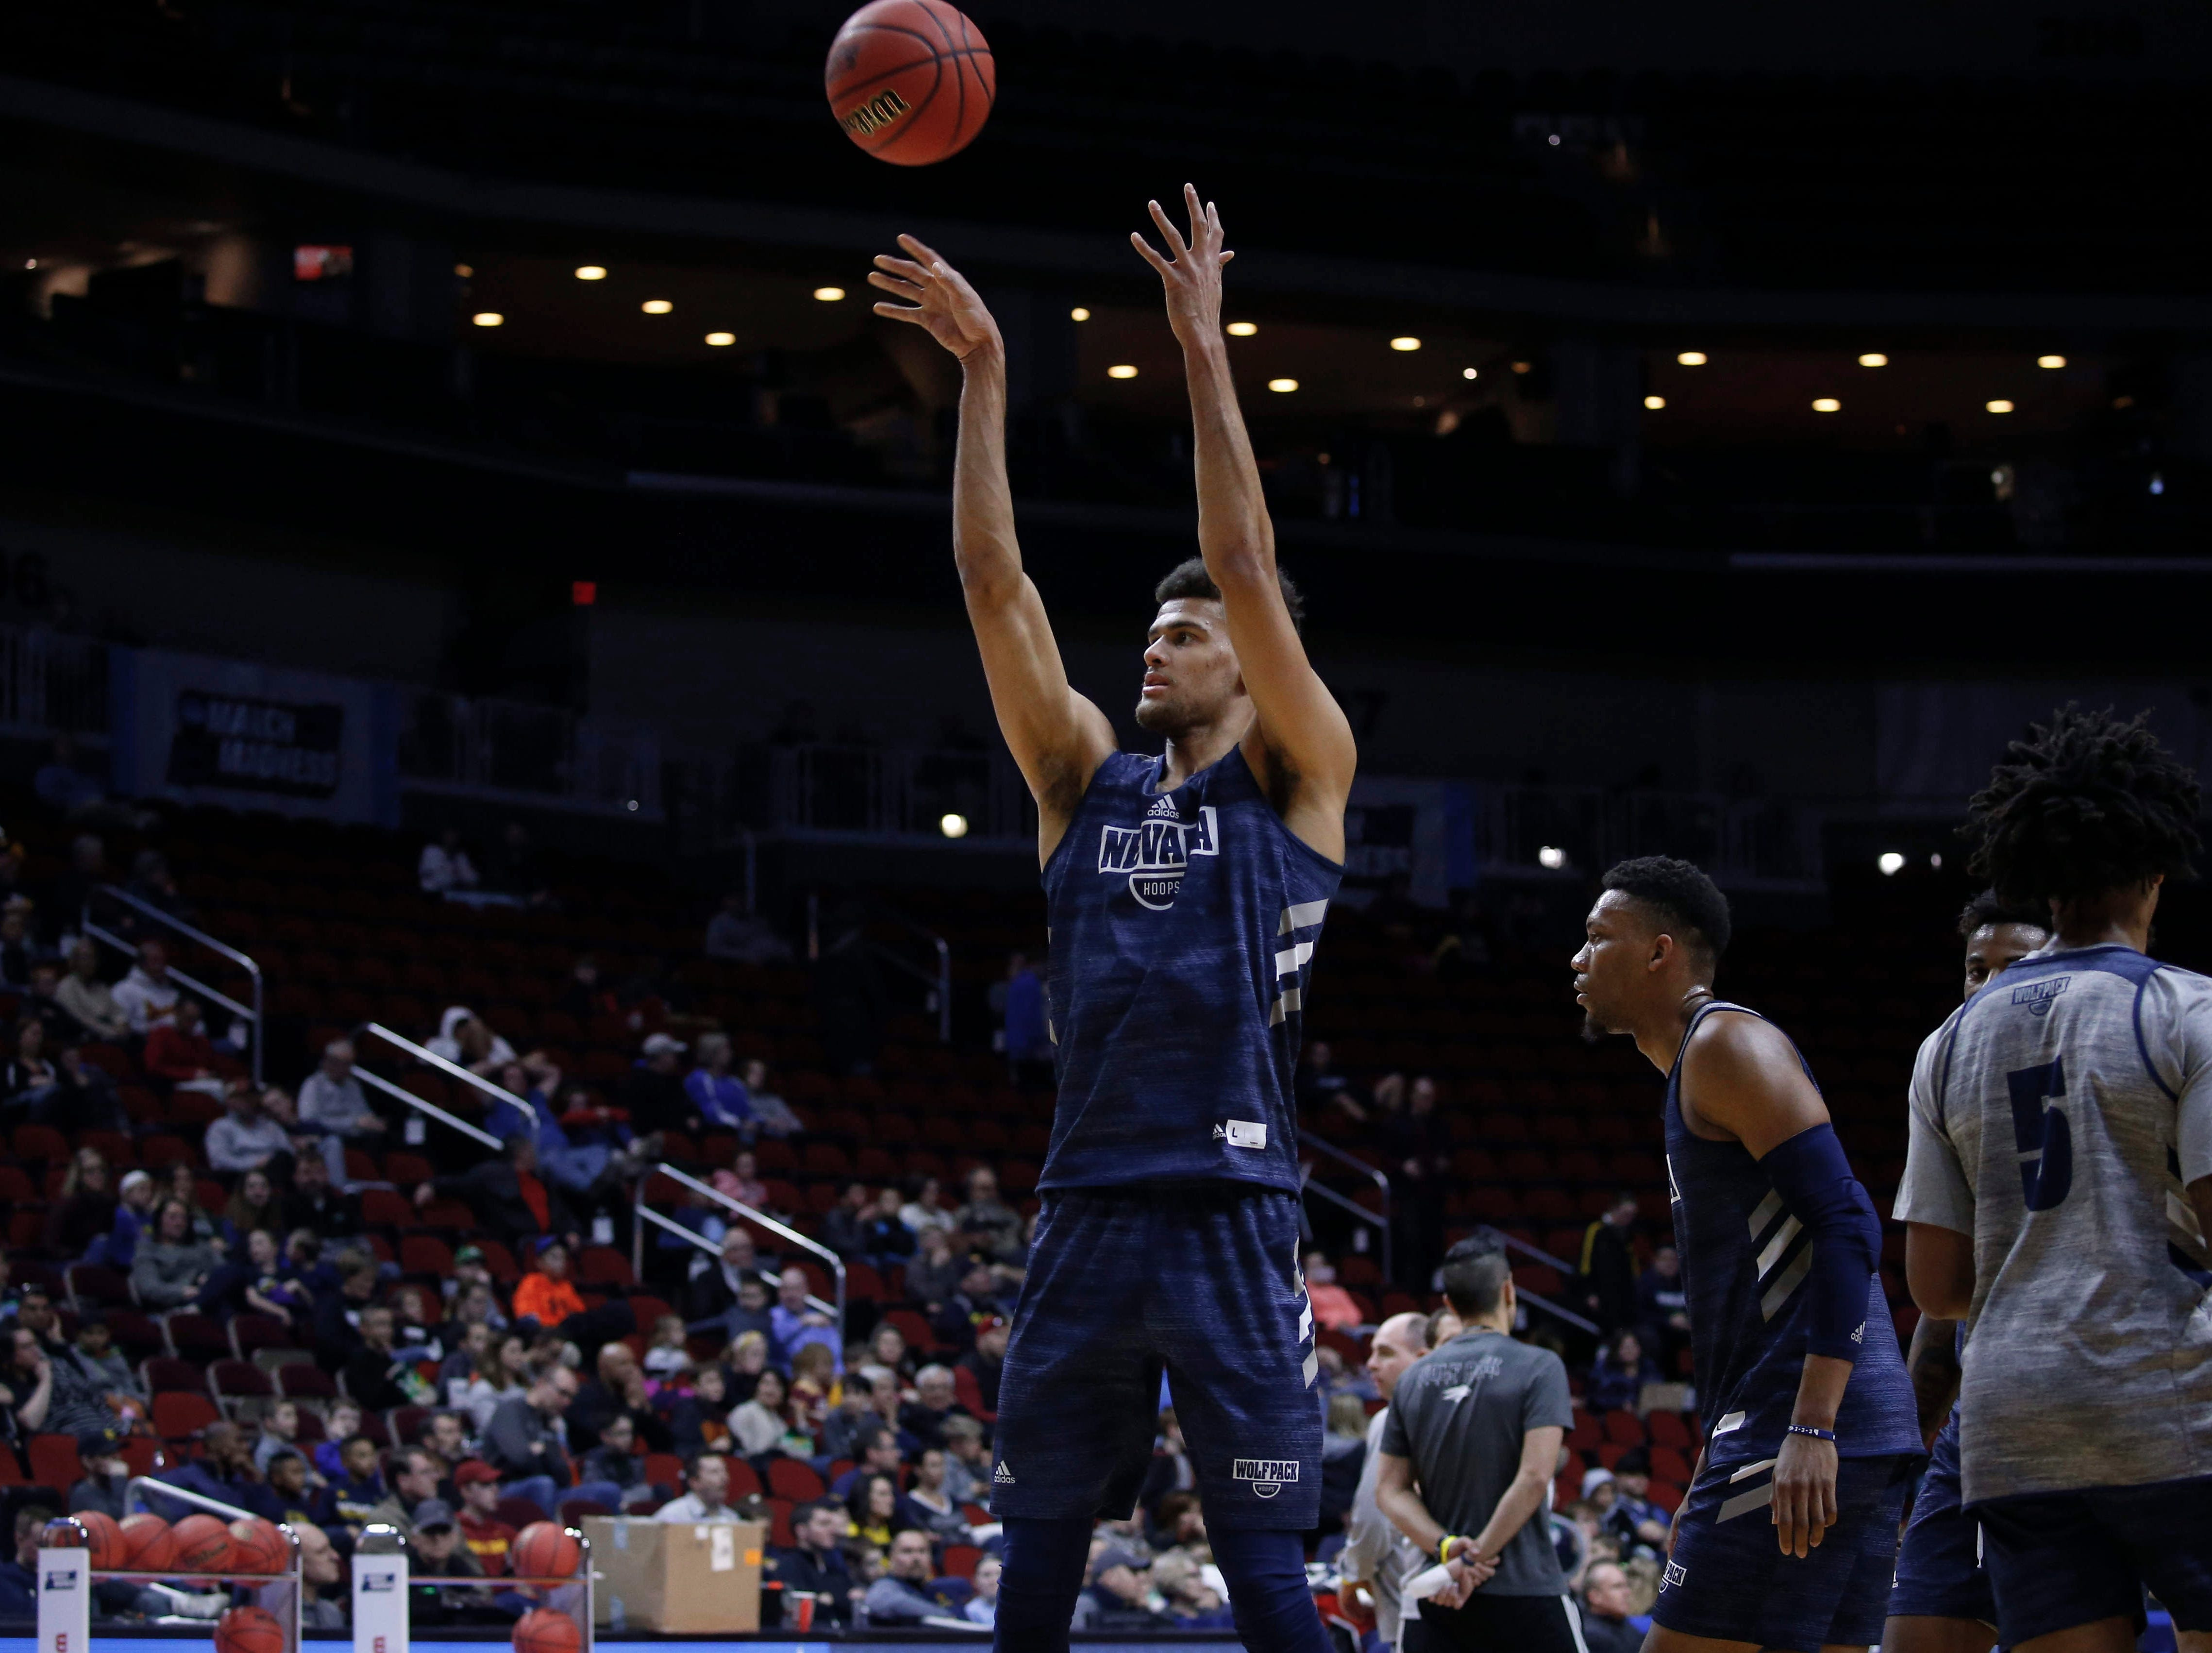 Nevada freshman Trey Porter shoots the ball during open practice on Wednesday, March 20, 2019, at Wells Fargo Arena in Des Moines, Iowa.